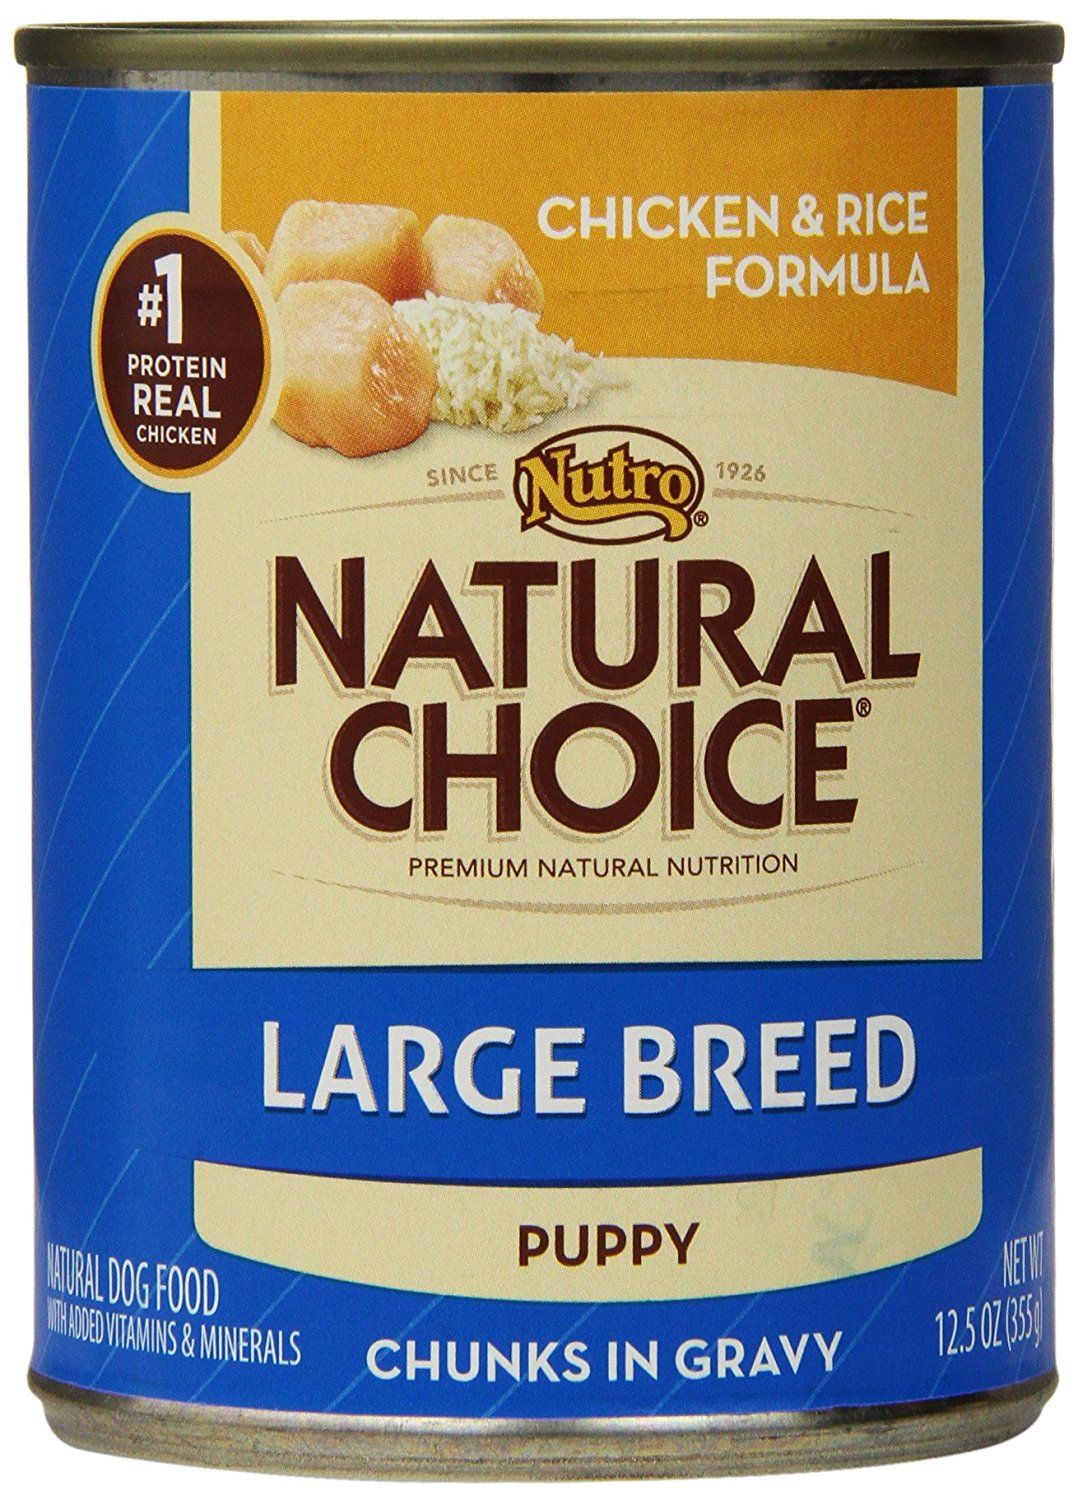 Nutro natural choice large breed canned dog food cant